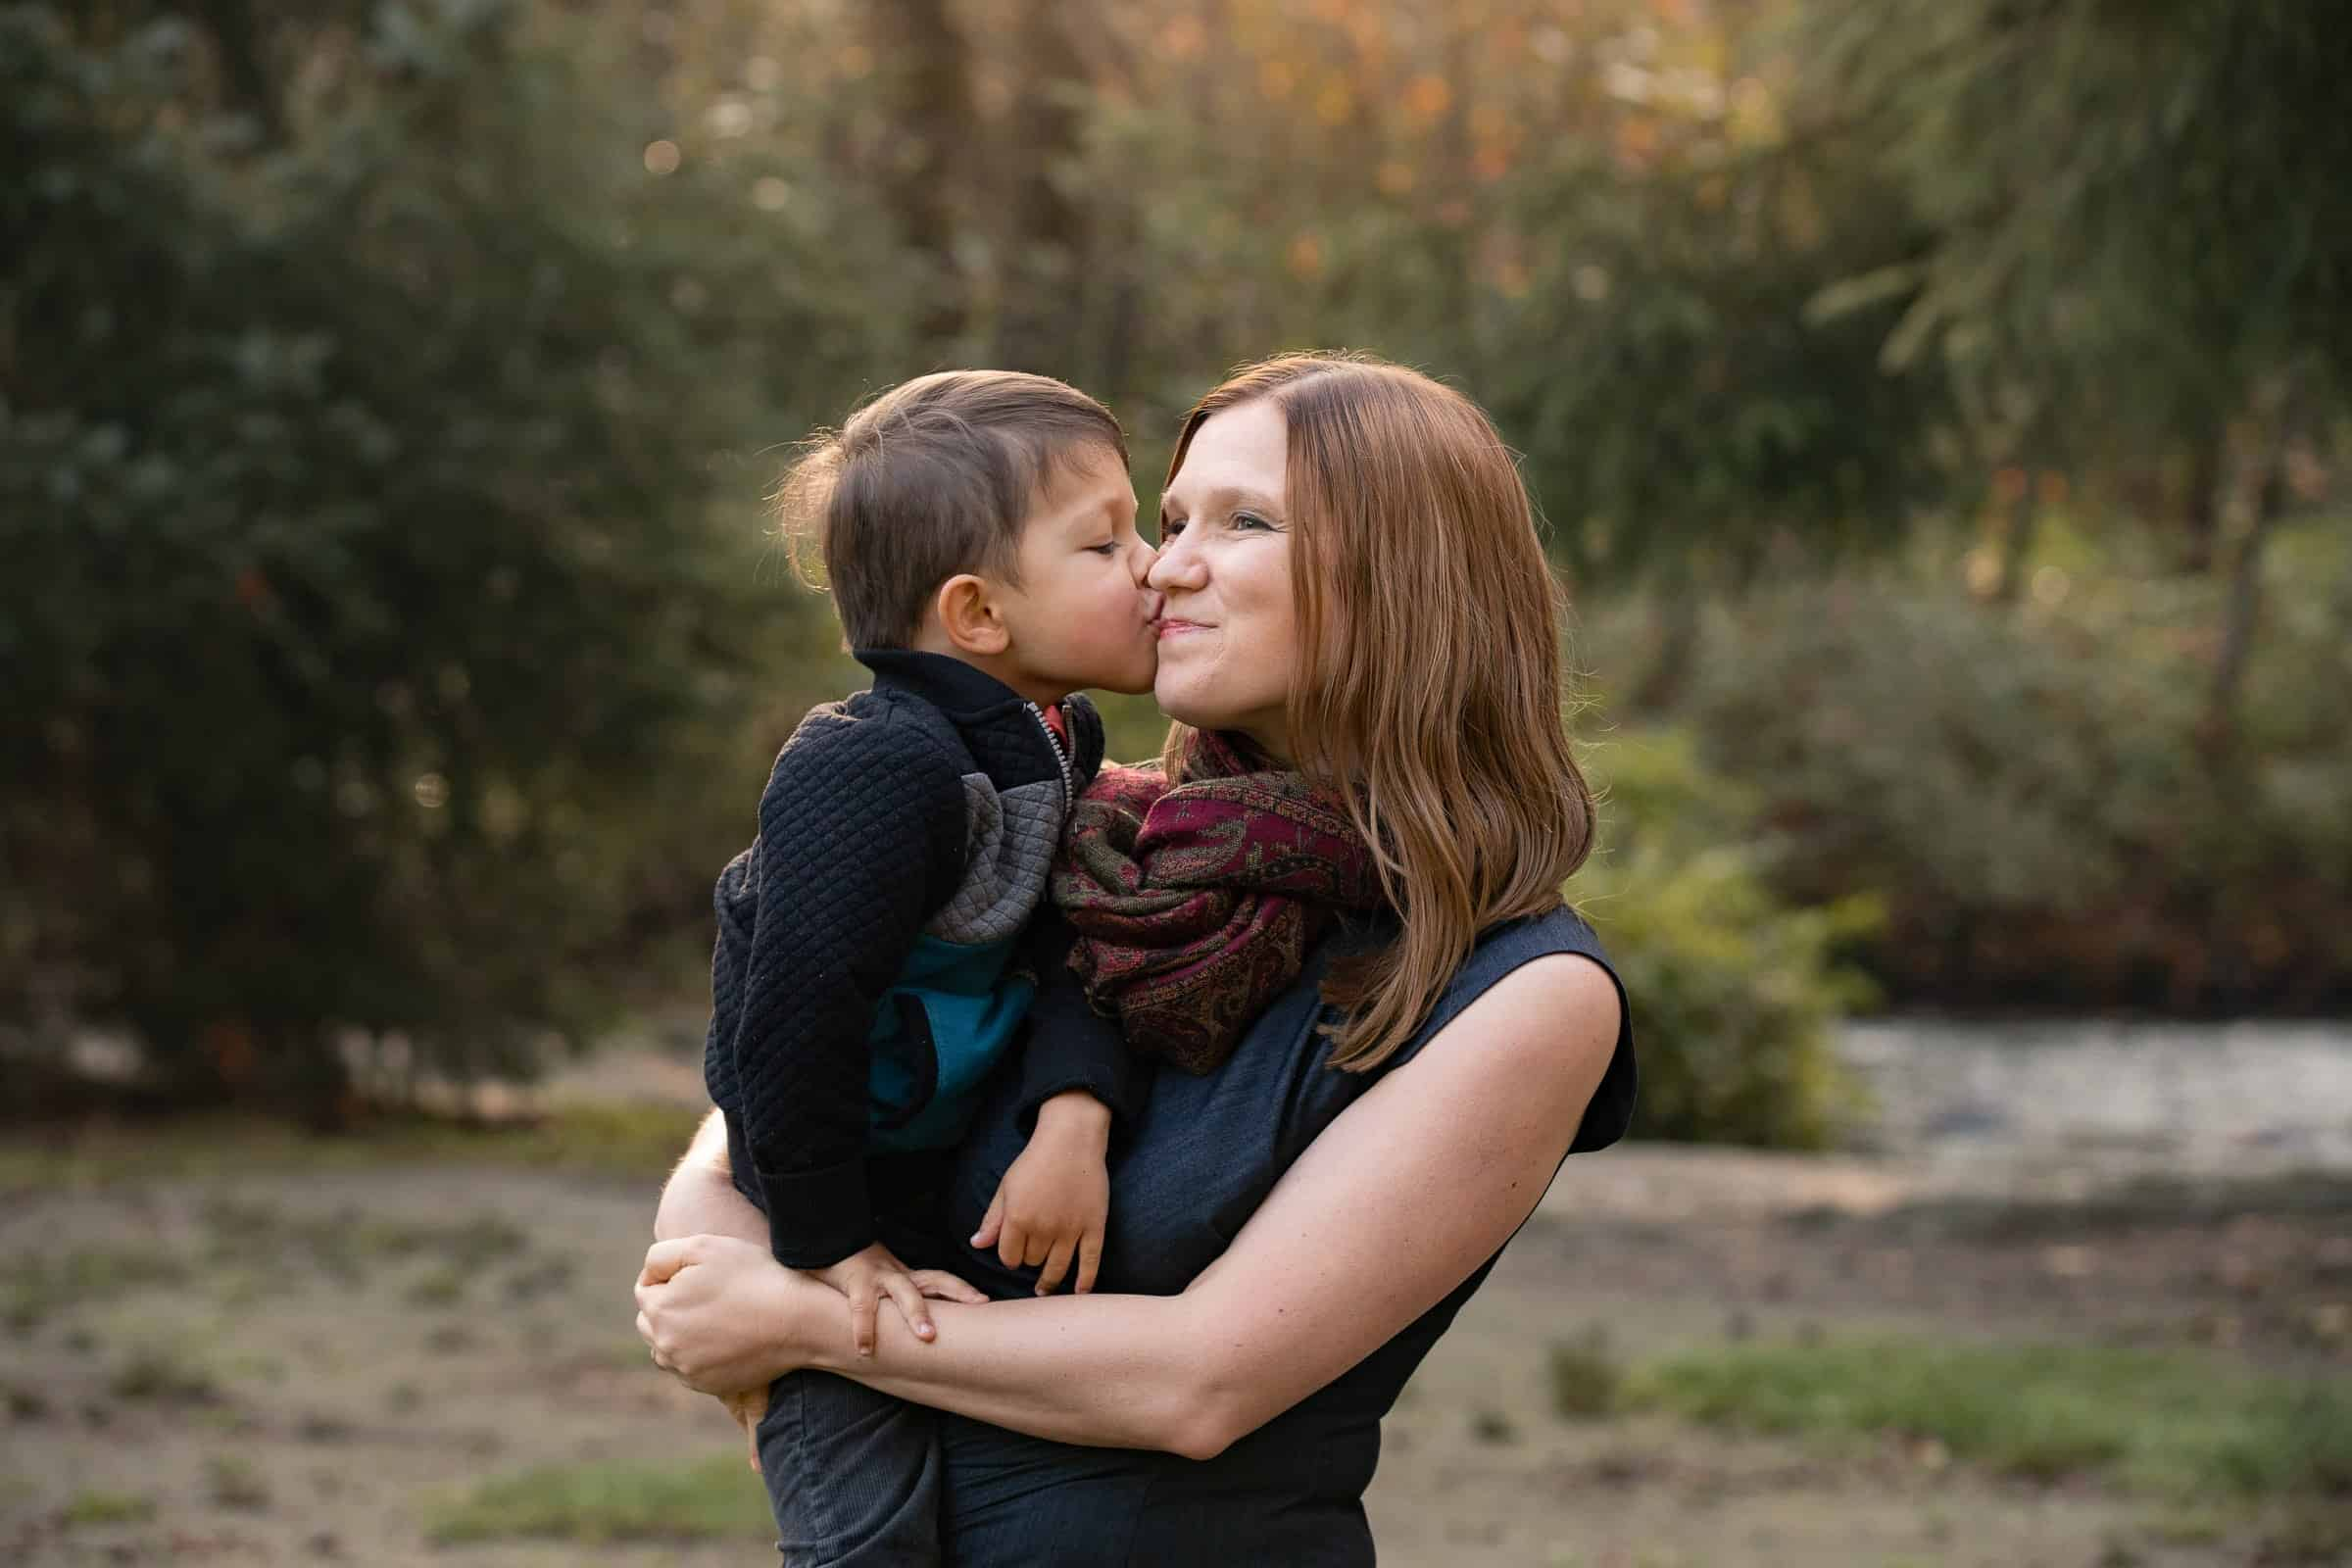 mother holding toddler son in her arms while he kisses her cheek